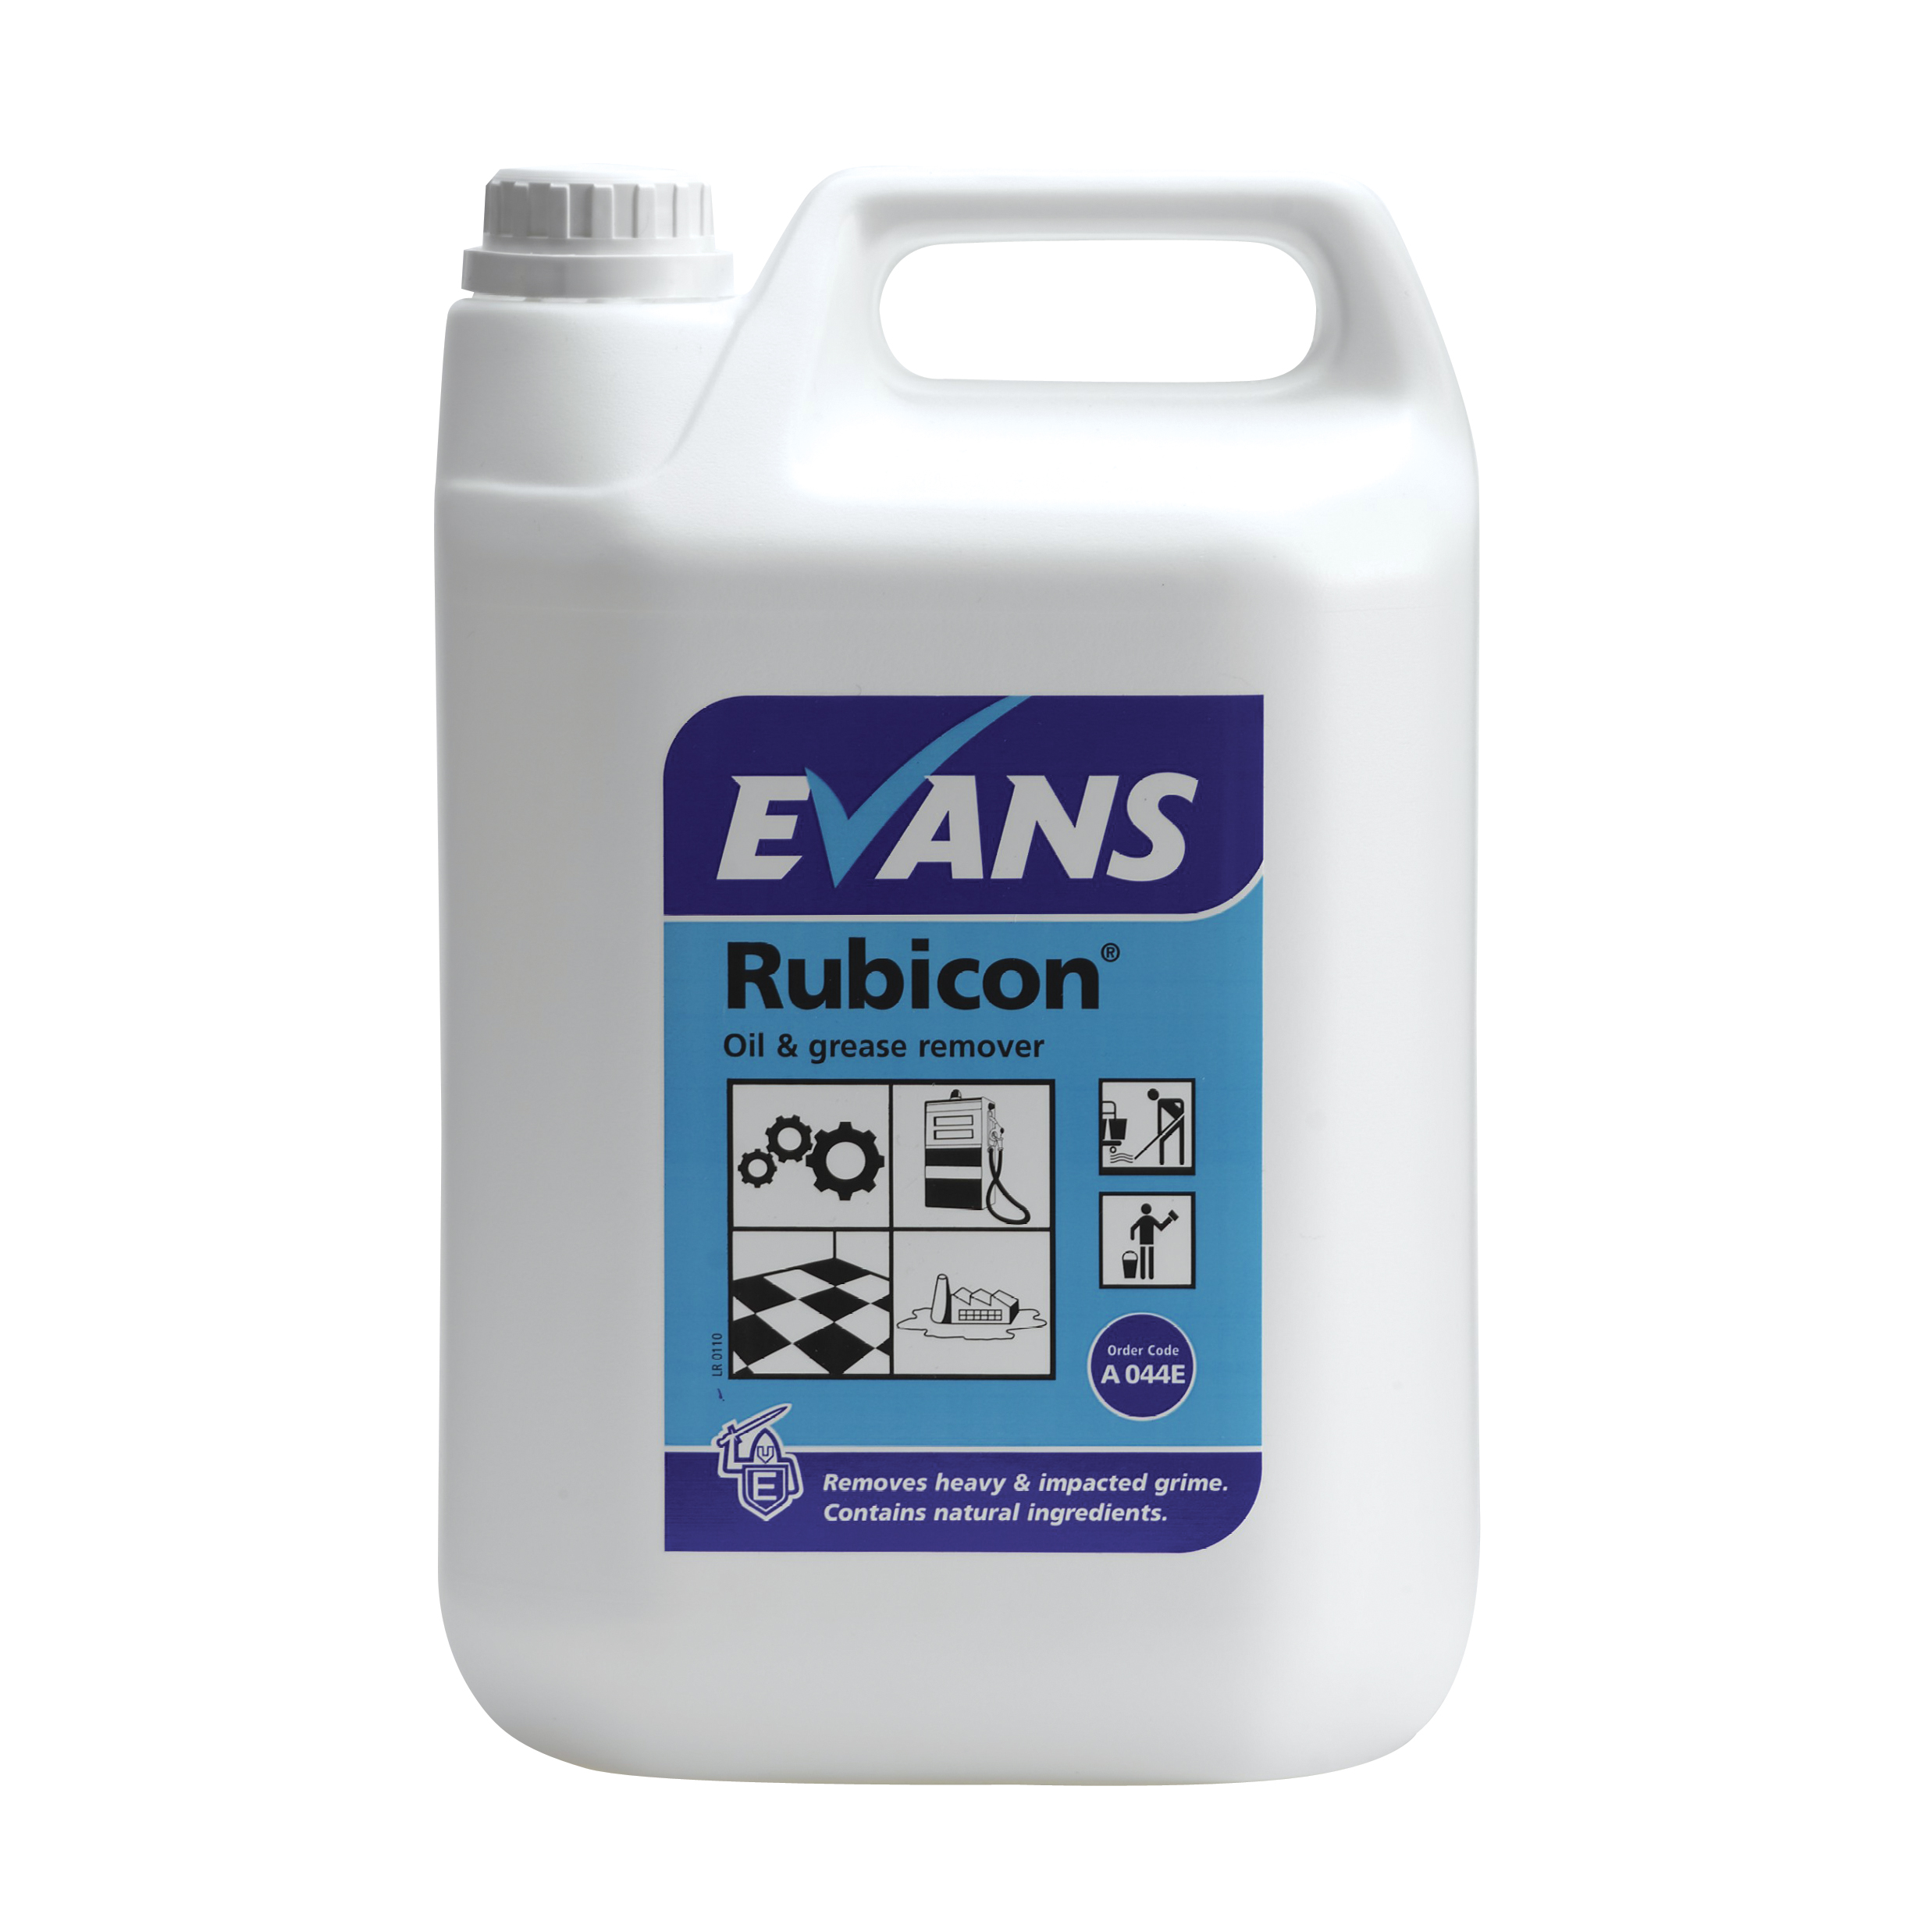 Evans vanodine rubicon oil grease remover heavy duty for Heavy duty concrete floor cleaner